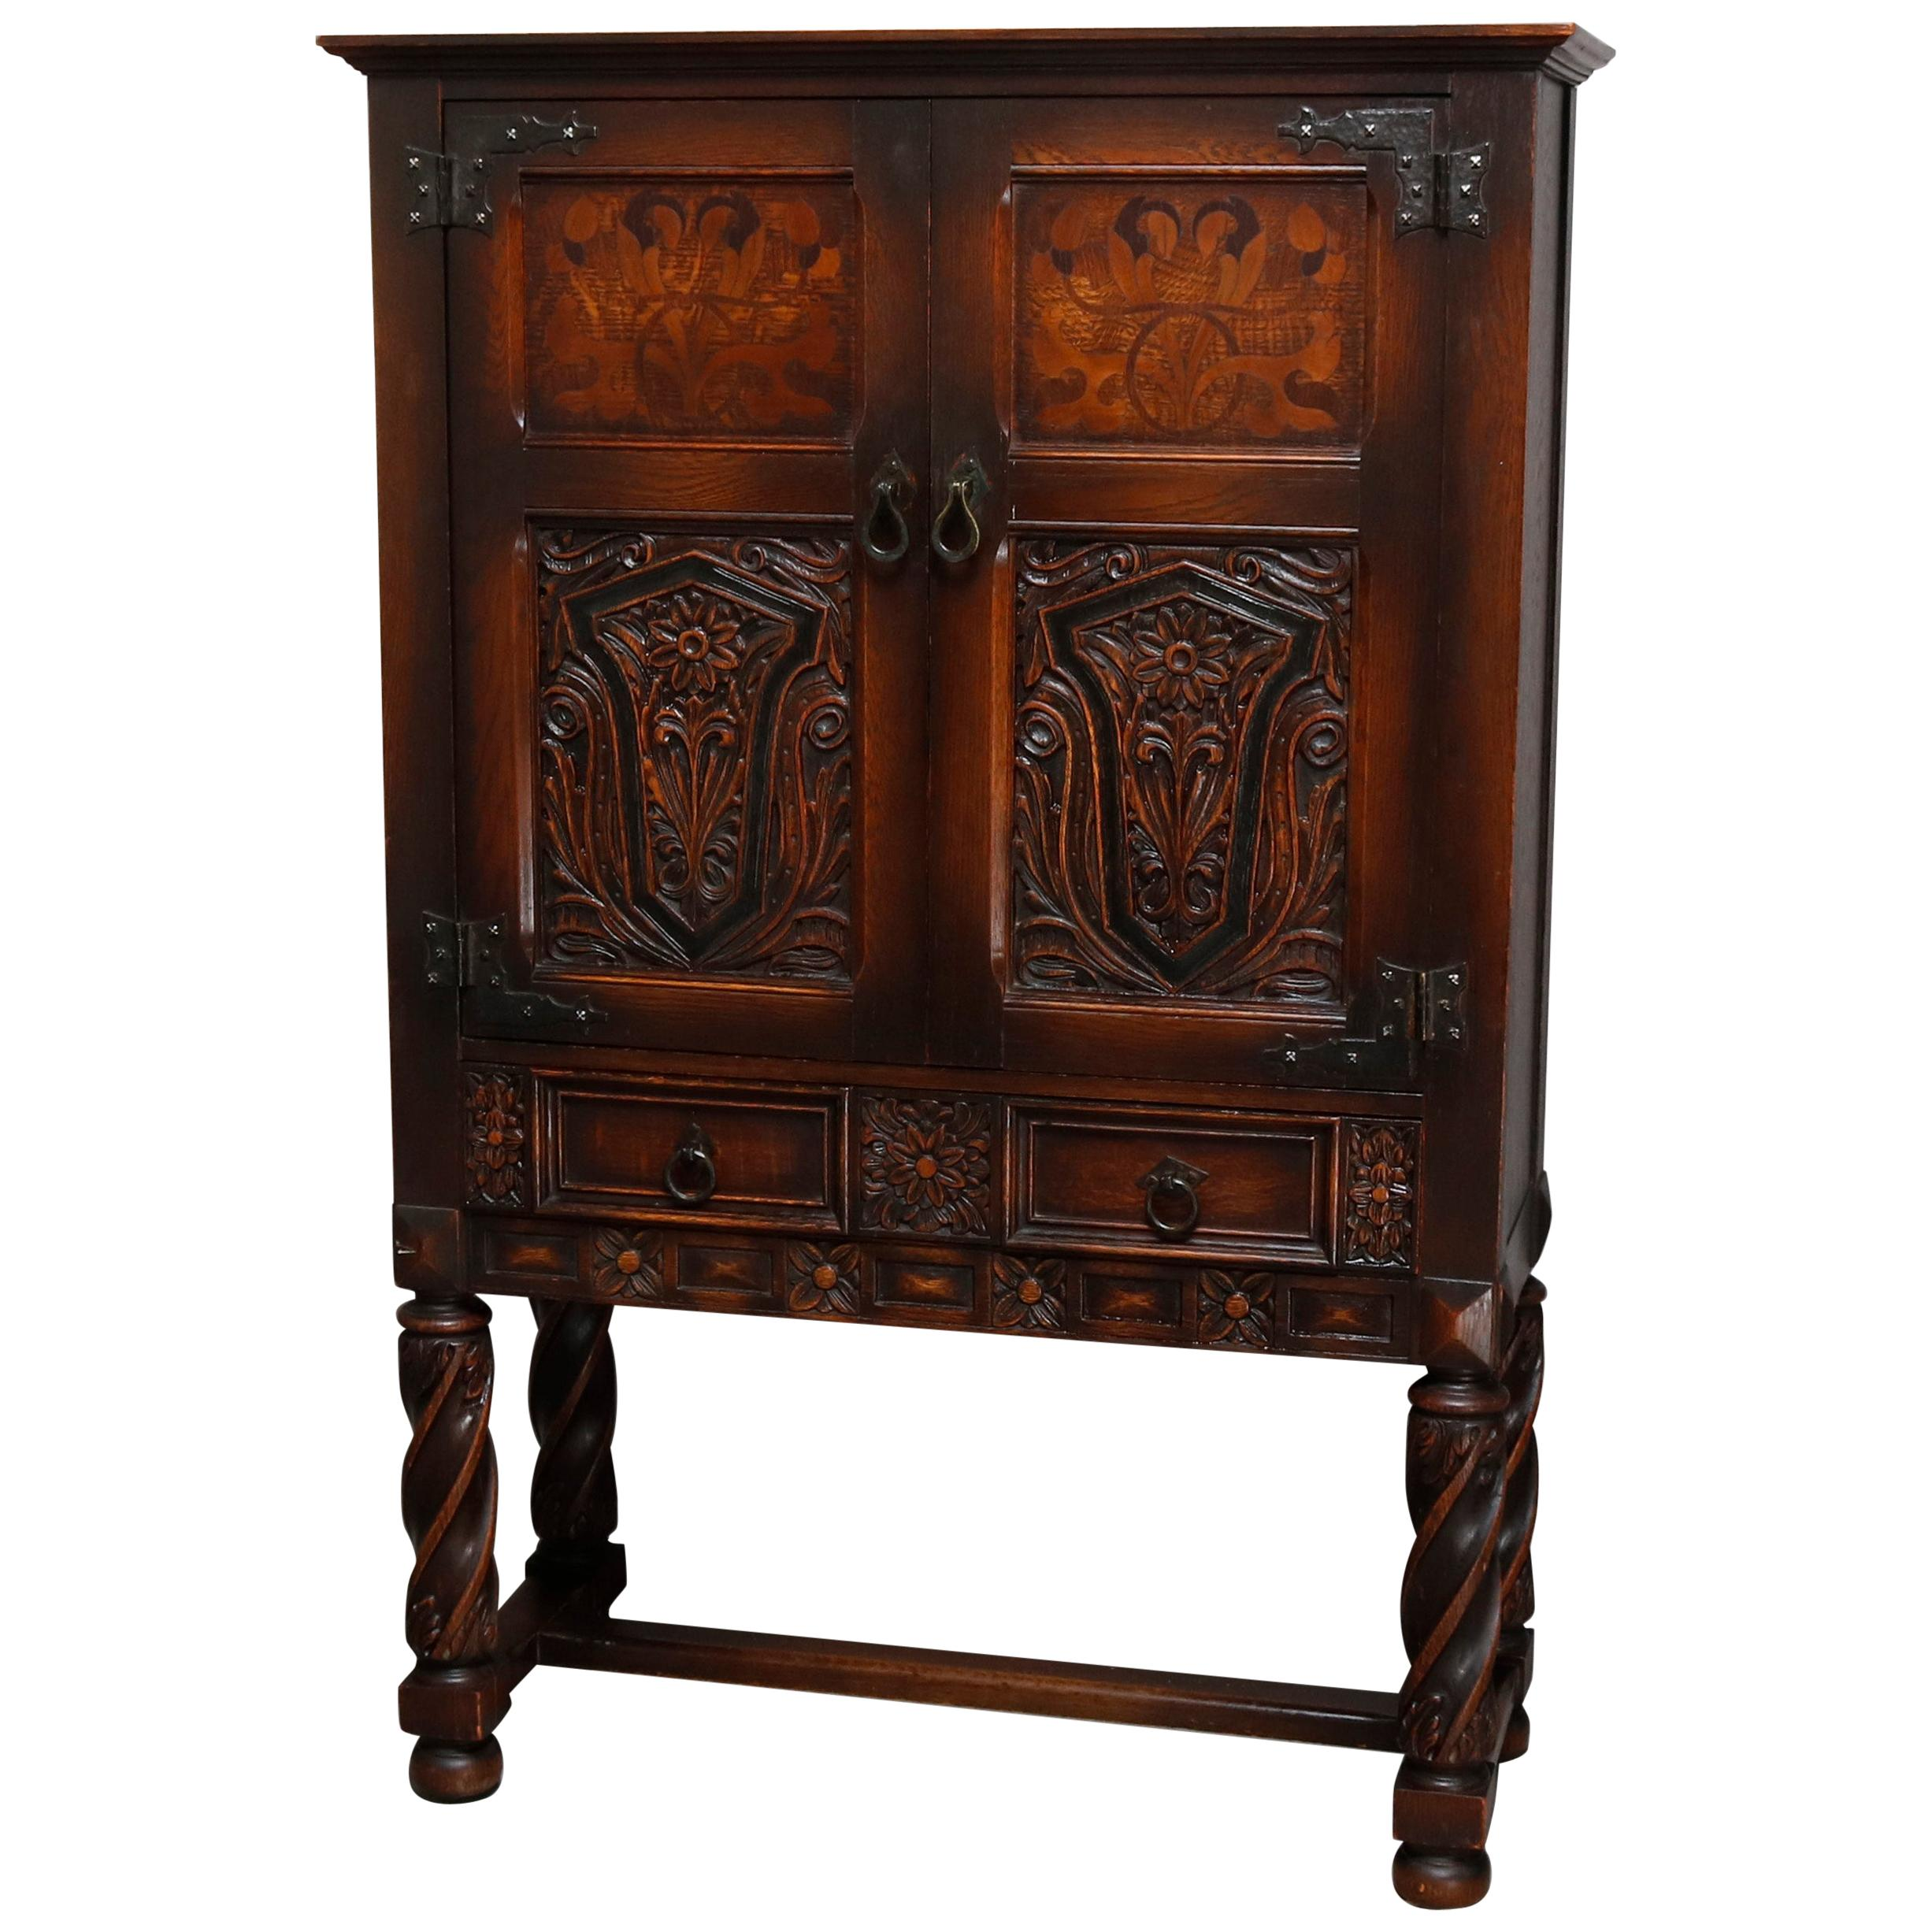 Delicieux Antique English Edwardian Style Inlaid And Carved Oak China Cabinet, Circa  1920